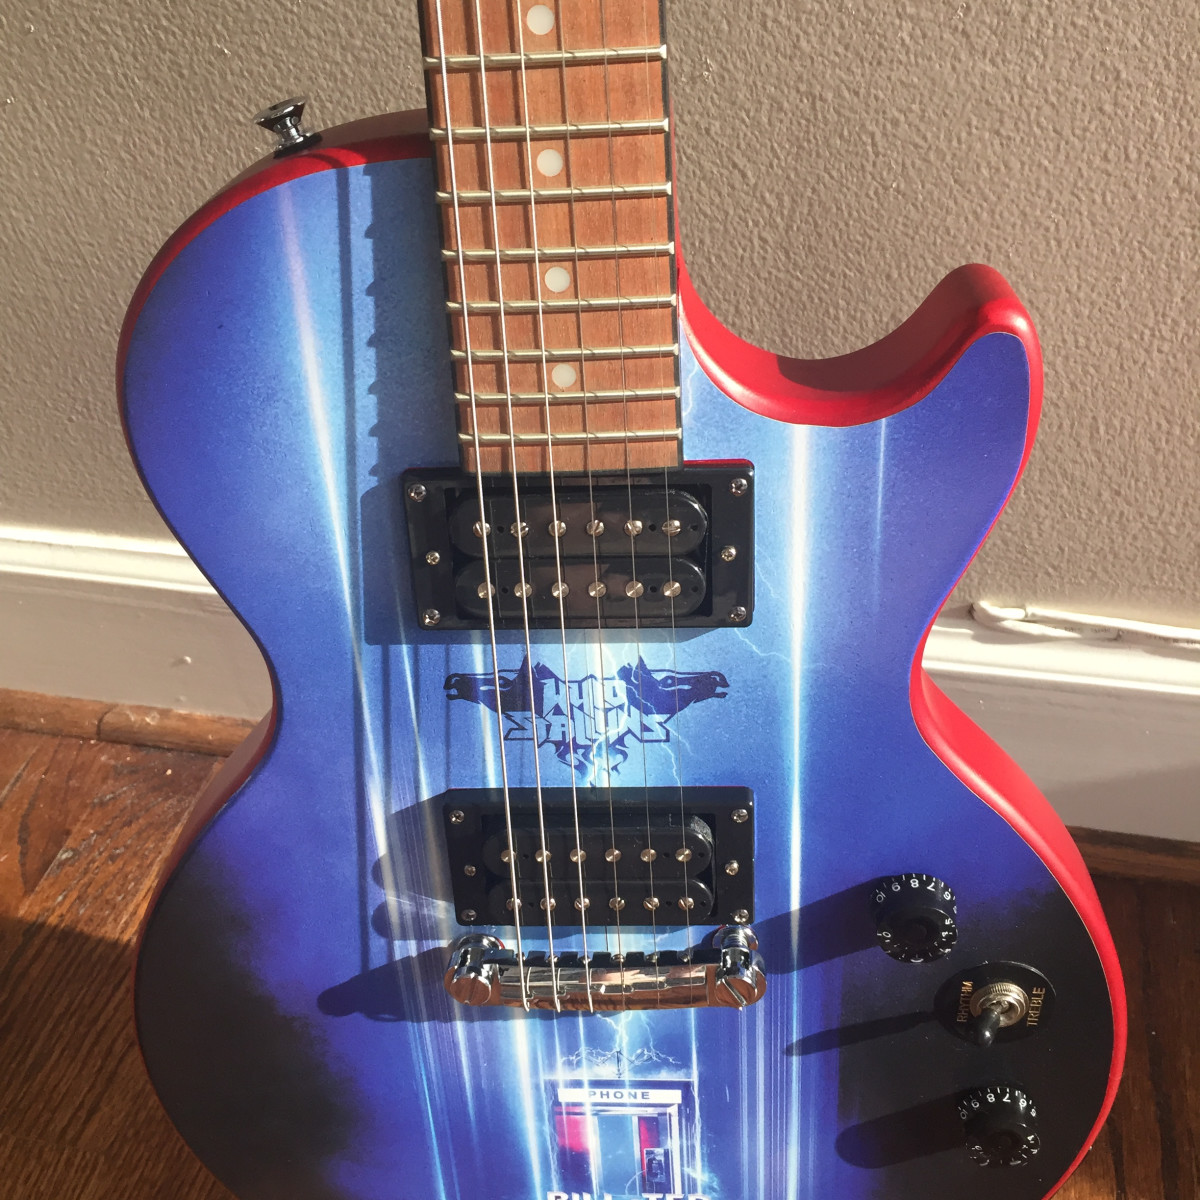 Bill and Ted Face the Music guitar